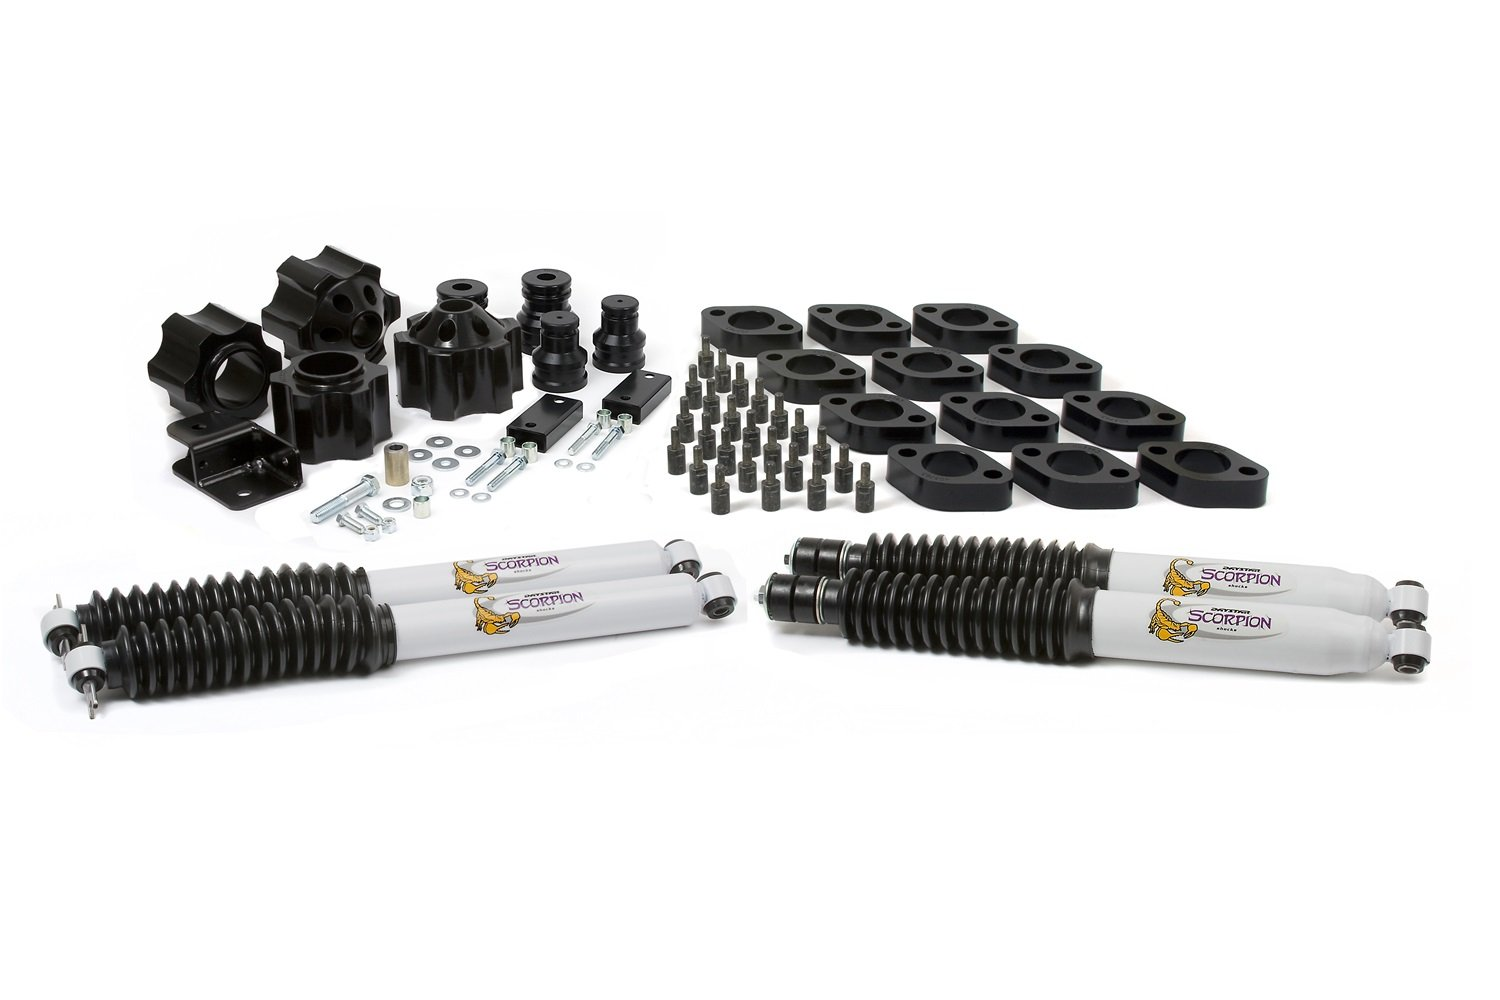 fits 2007 to 2017 2//4WD Daystar 3 suspension /& 1 body track bar bracket and front and rear shocks with bump stop extensions Jeep JK Wrangler 4 Lift Kit Made in America fits automatic transmission only KJ09156BK